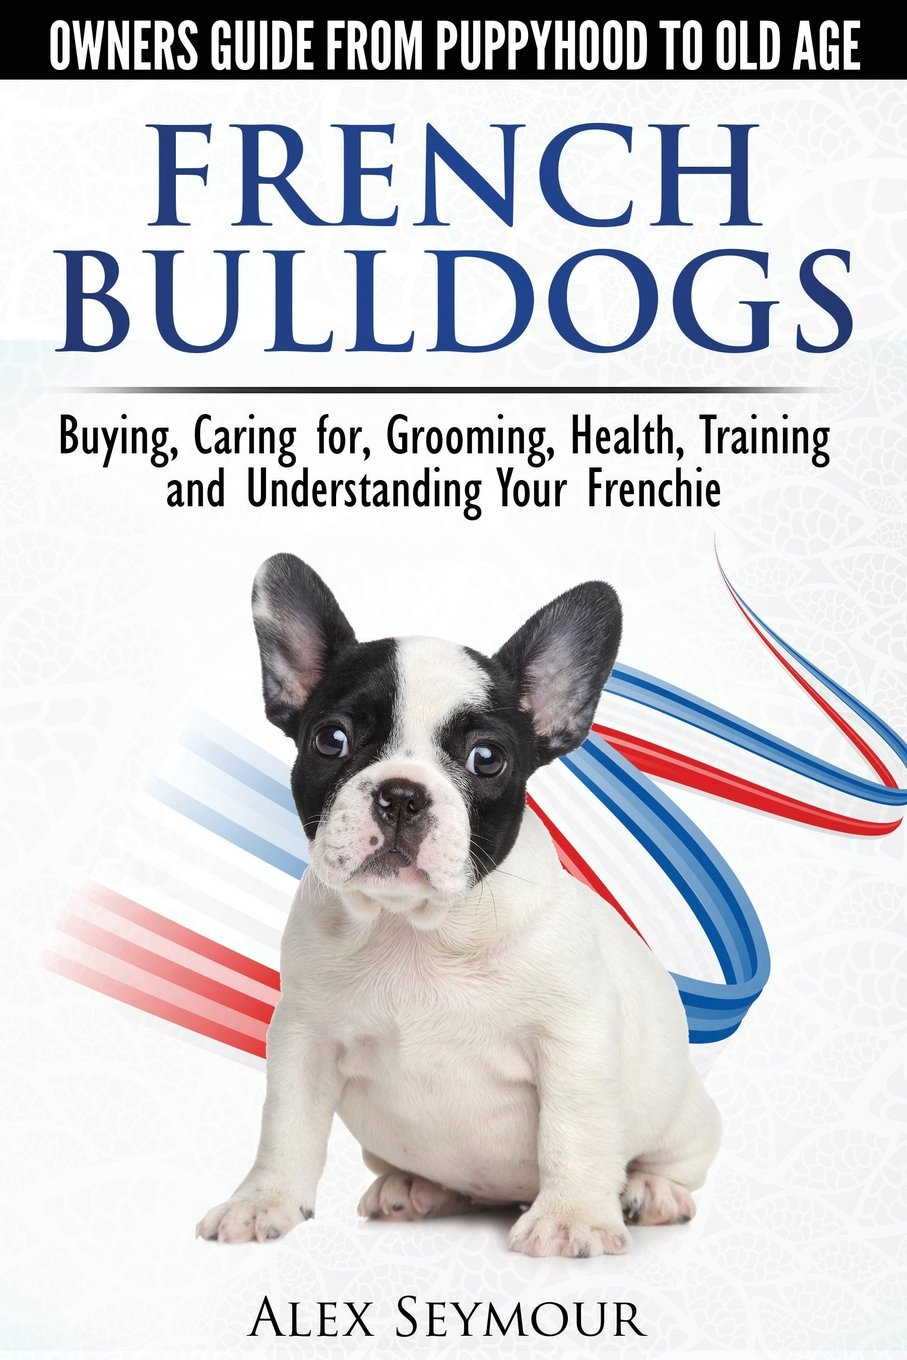 French Bulldogs - Owners Guide